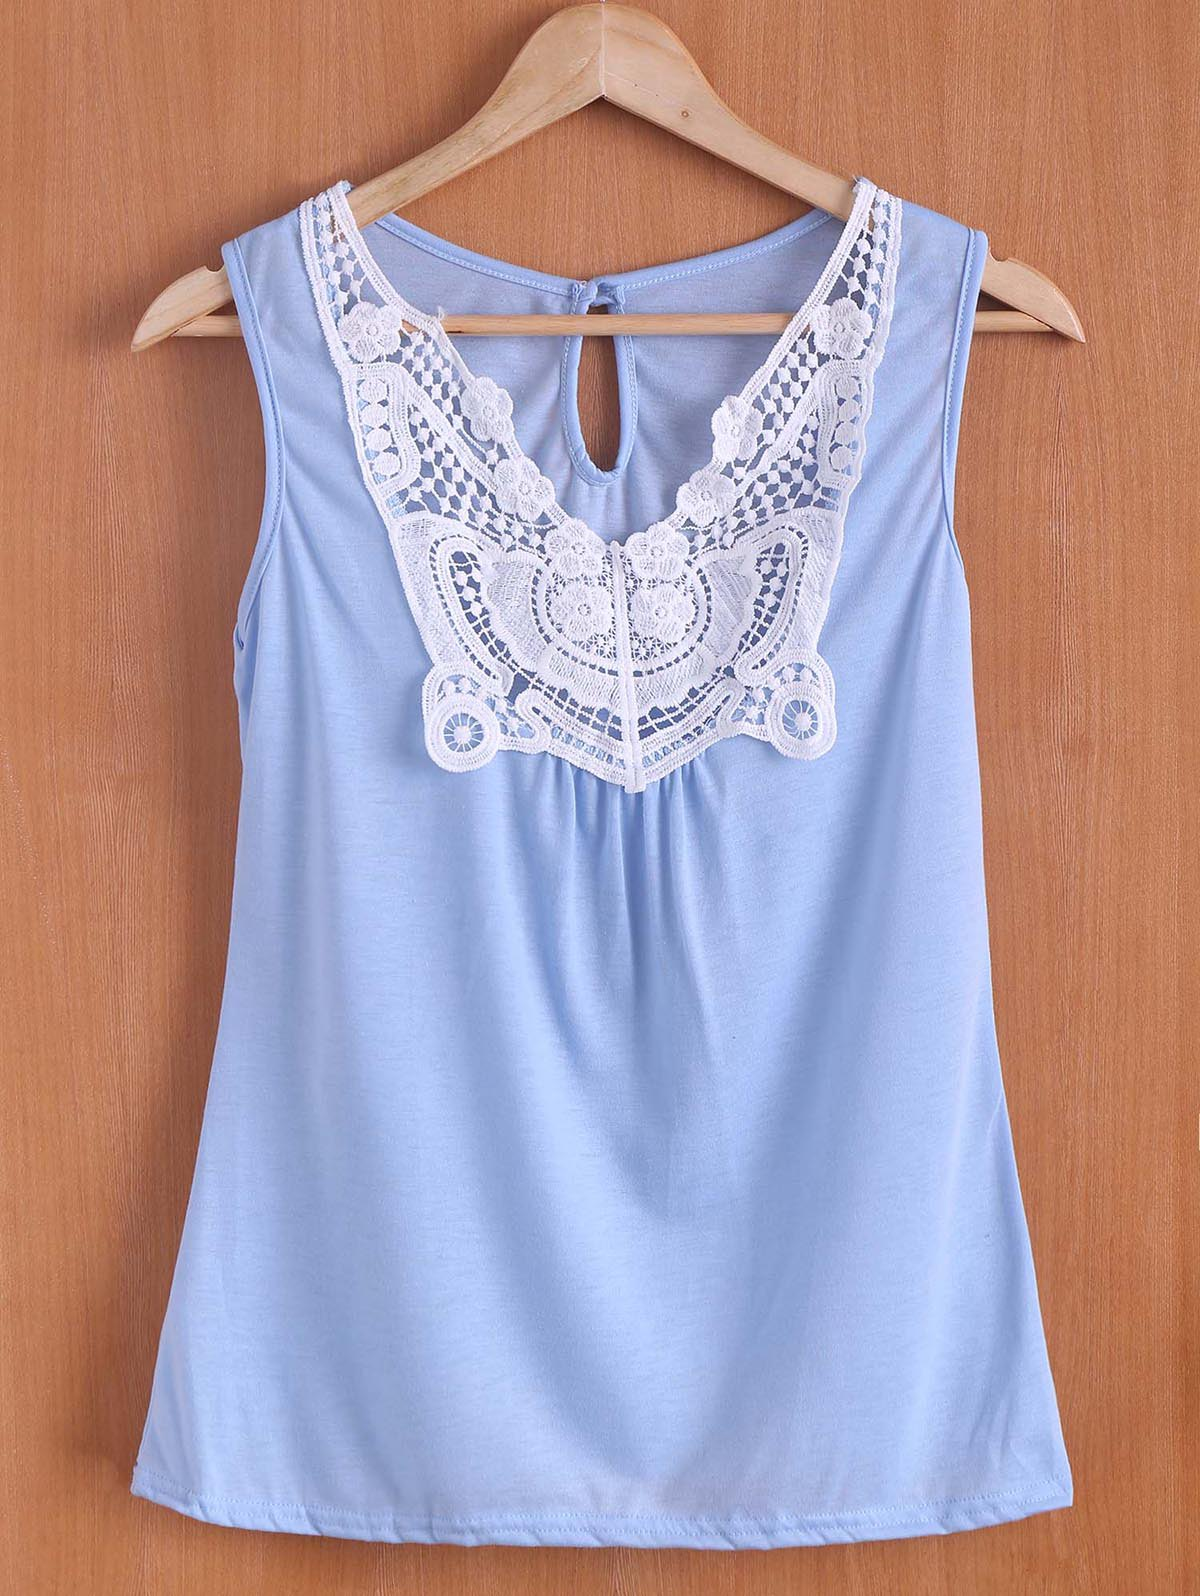 Stylish Sleeveless Scoop Neck Spliced Women's Tank Top